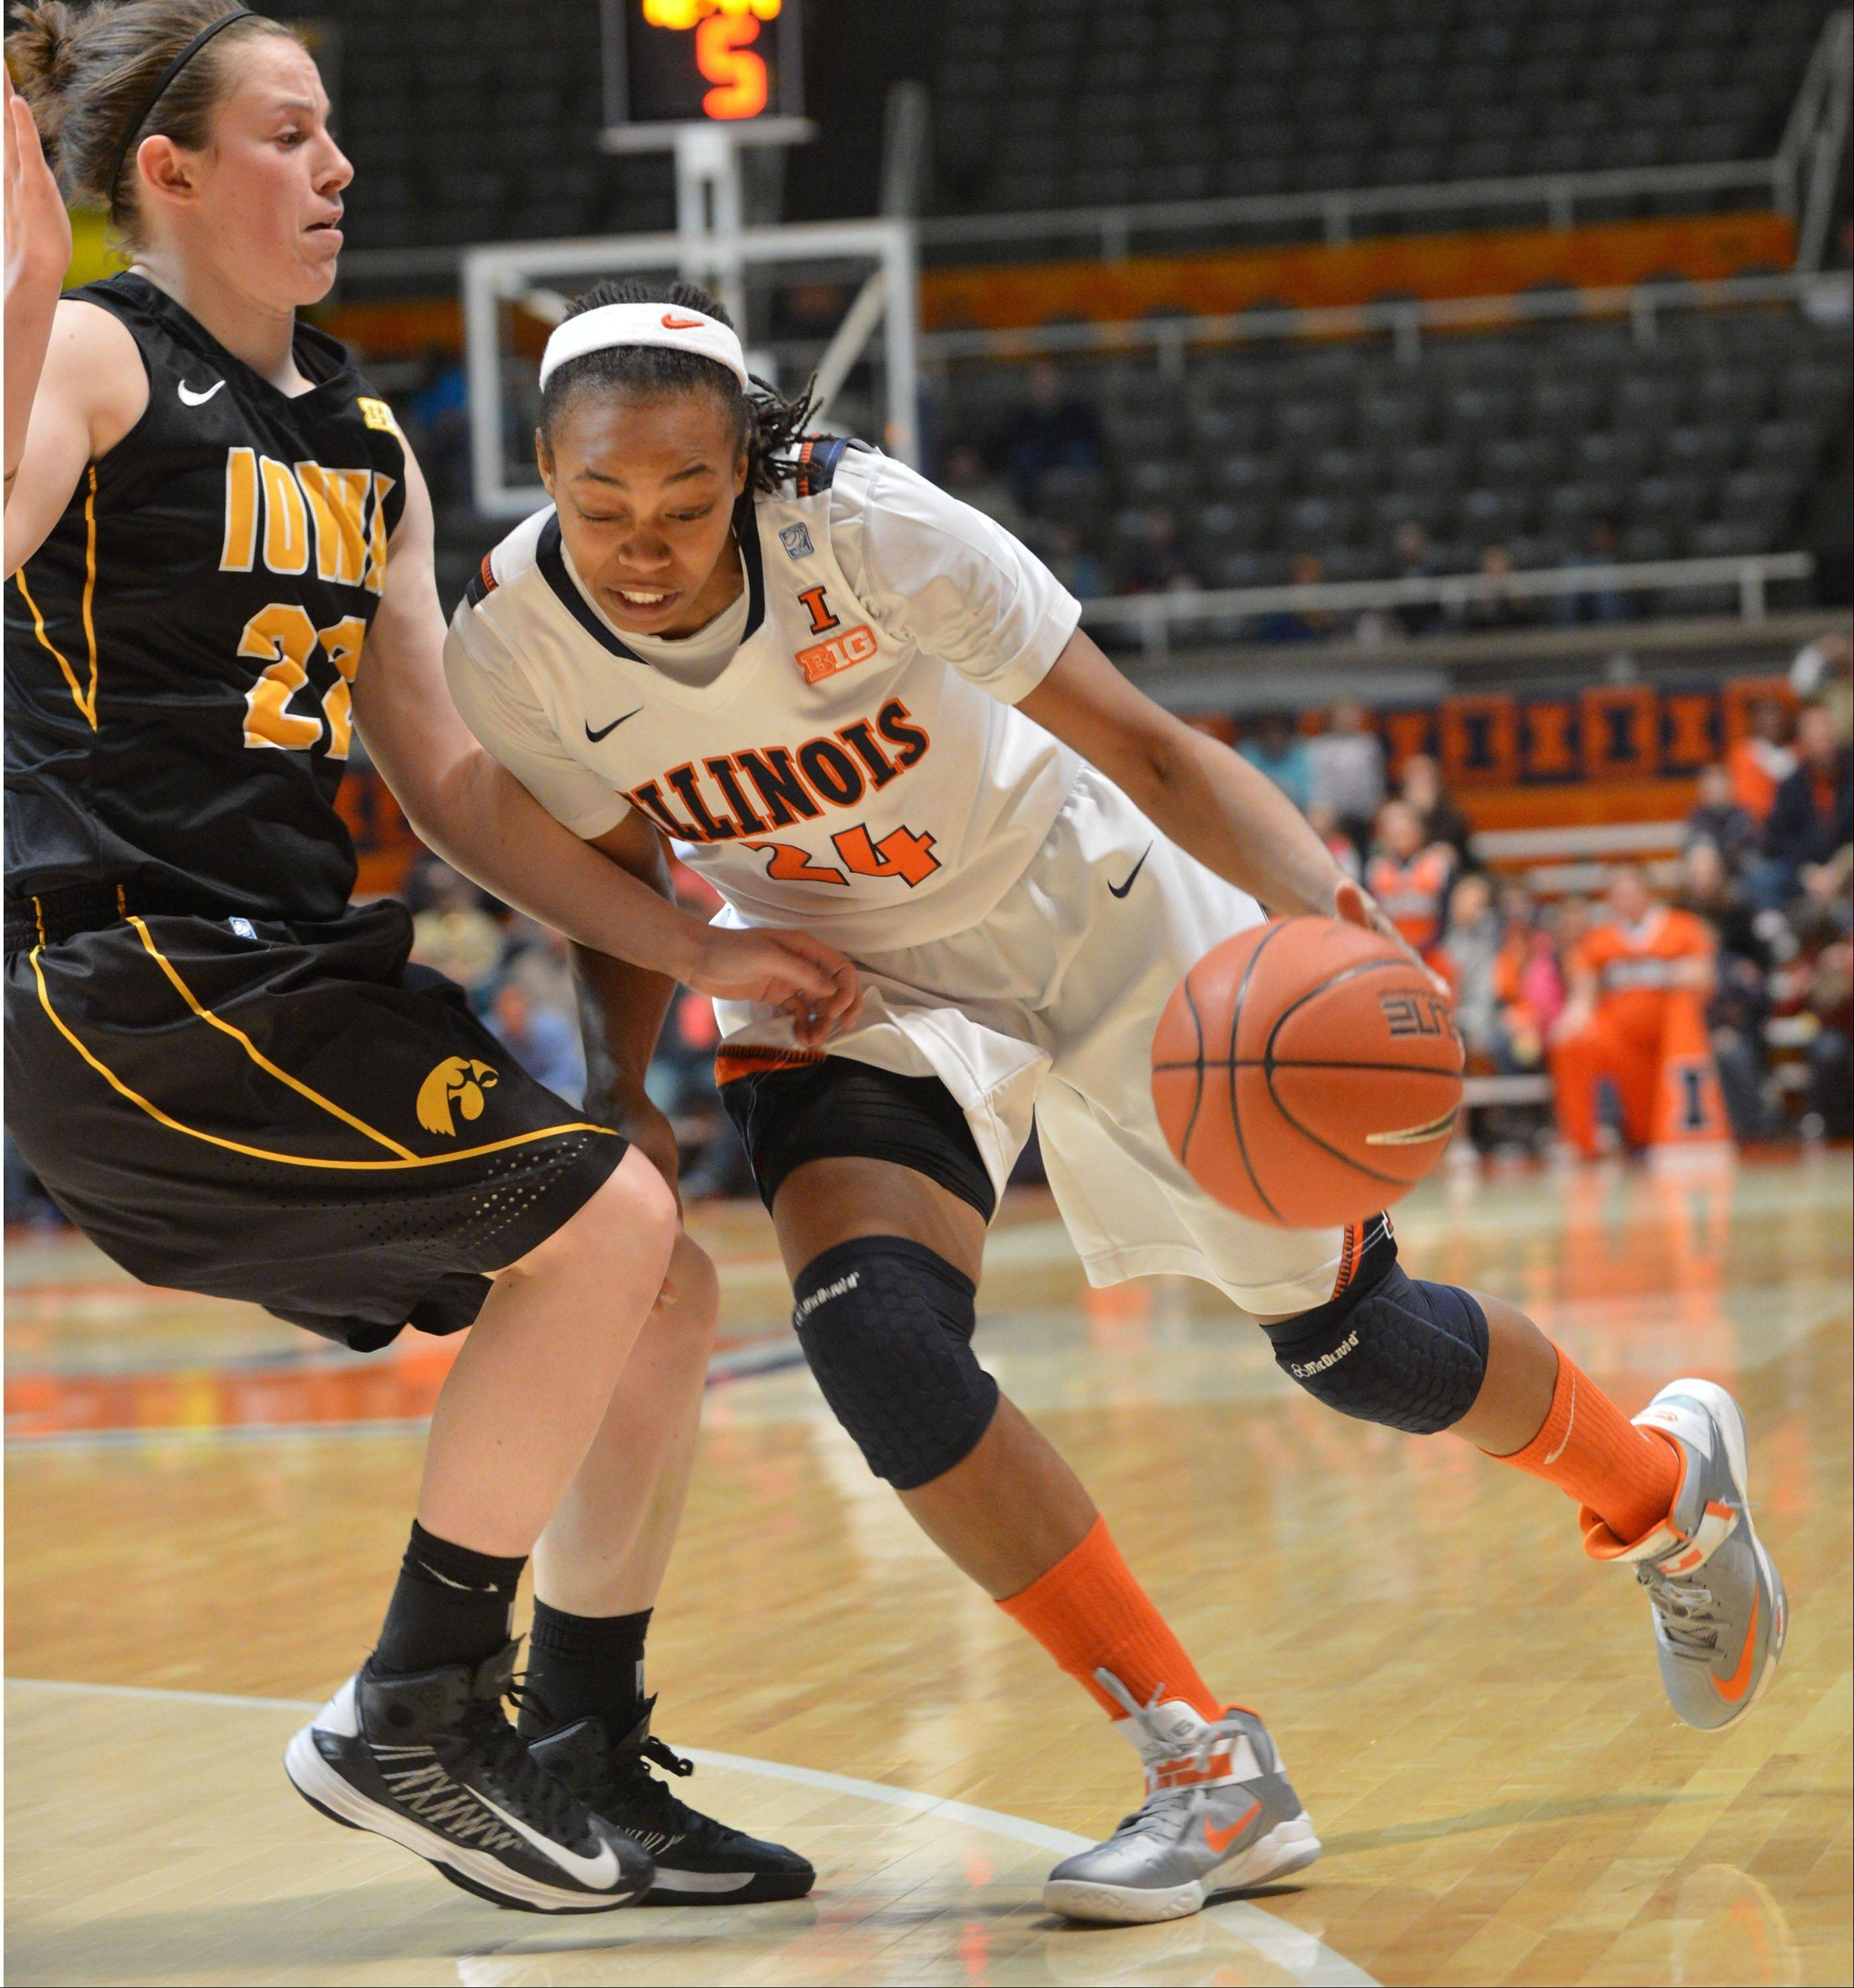 Illinois guard Ivory Crawford drives against Iowa guard Samantha Logic during the second half of a Jan. 31 game in Champaign. The Illini stand at 13-9 overall after a loss Thursday night at Michigan.